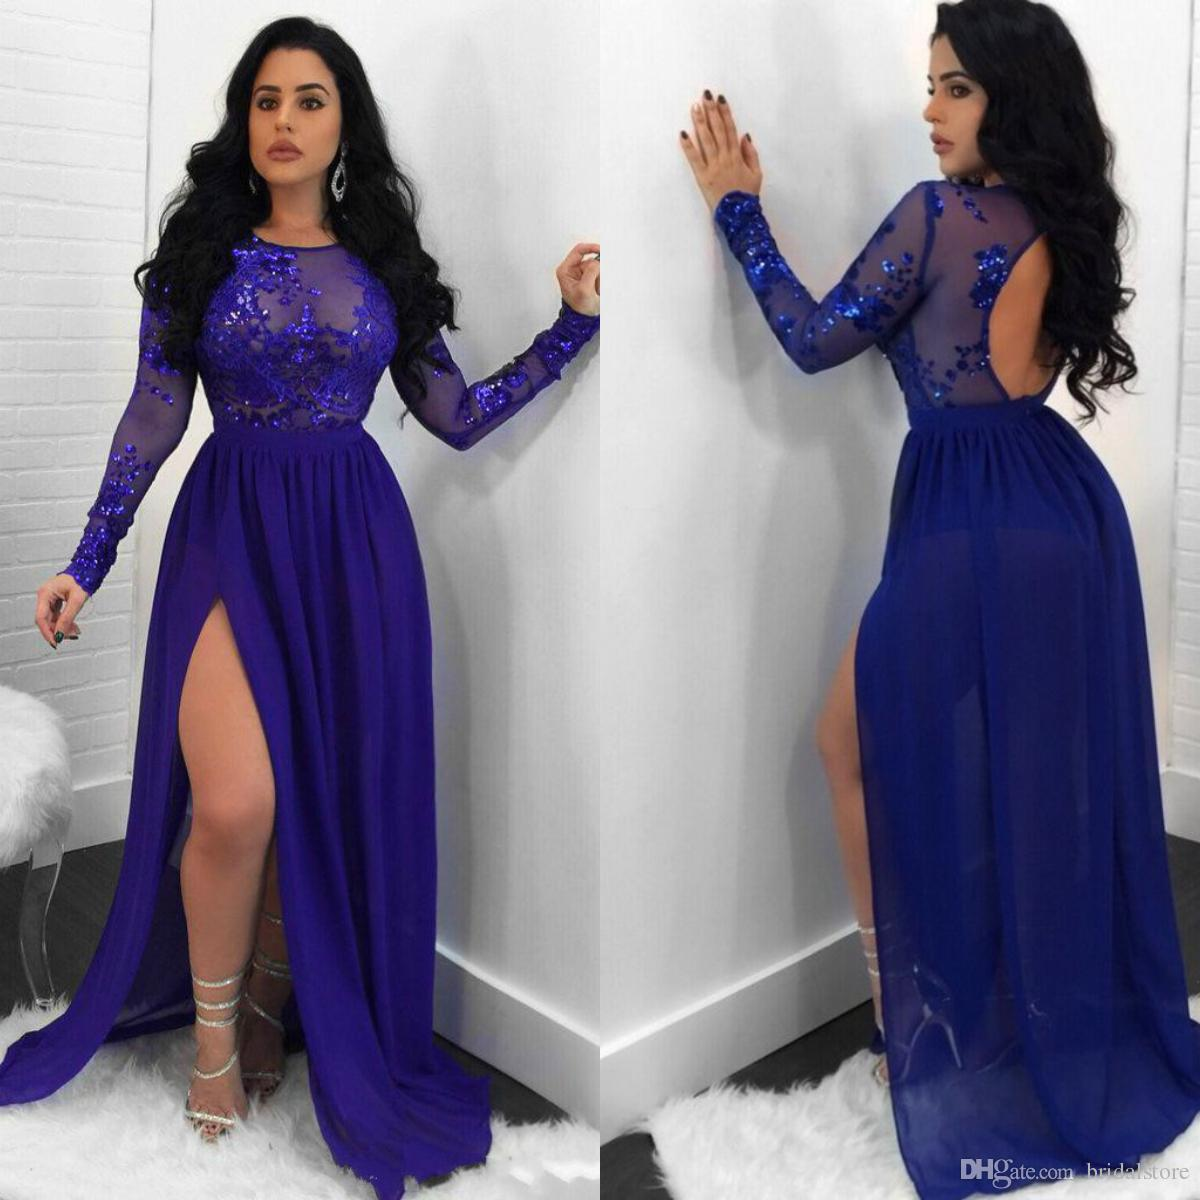 Elegant Royal Blue Long Sleeve Evening Dresses African Open Back Prom Gowns  Floor Length Chiffon Formal Party Dress Chic Robes De Soirée Halter Evening  ... 6e7a27100ae4